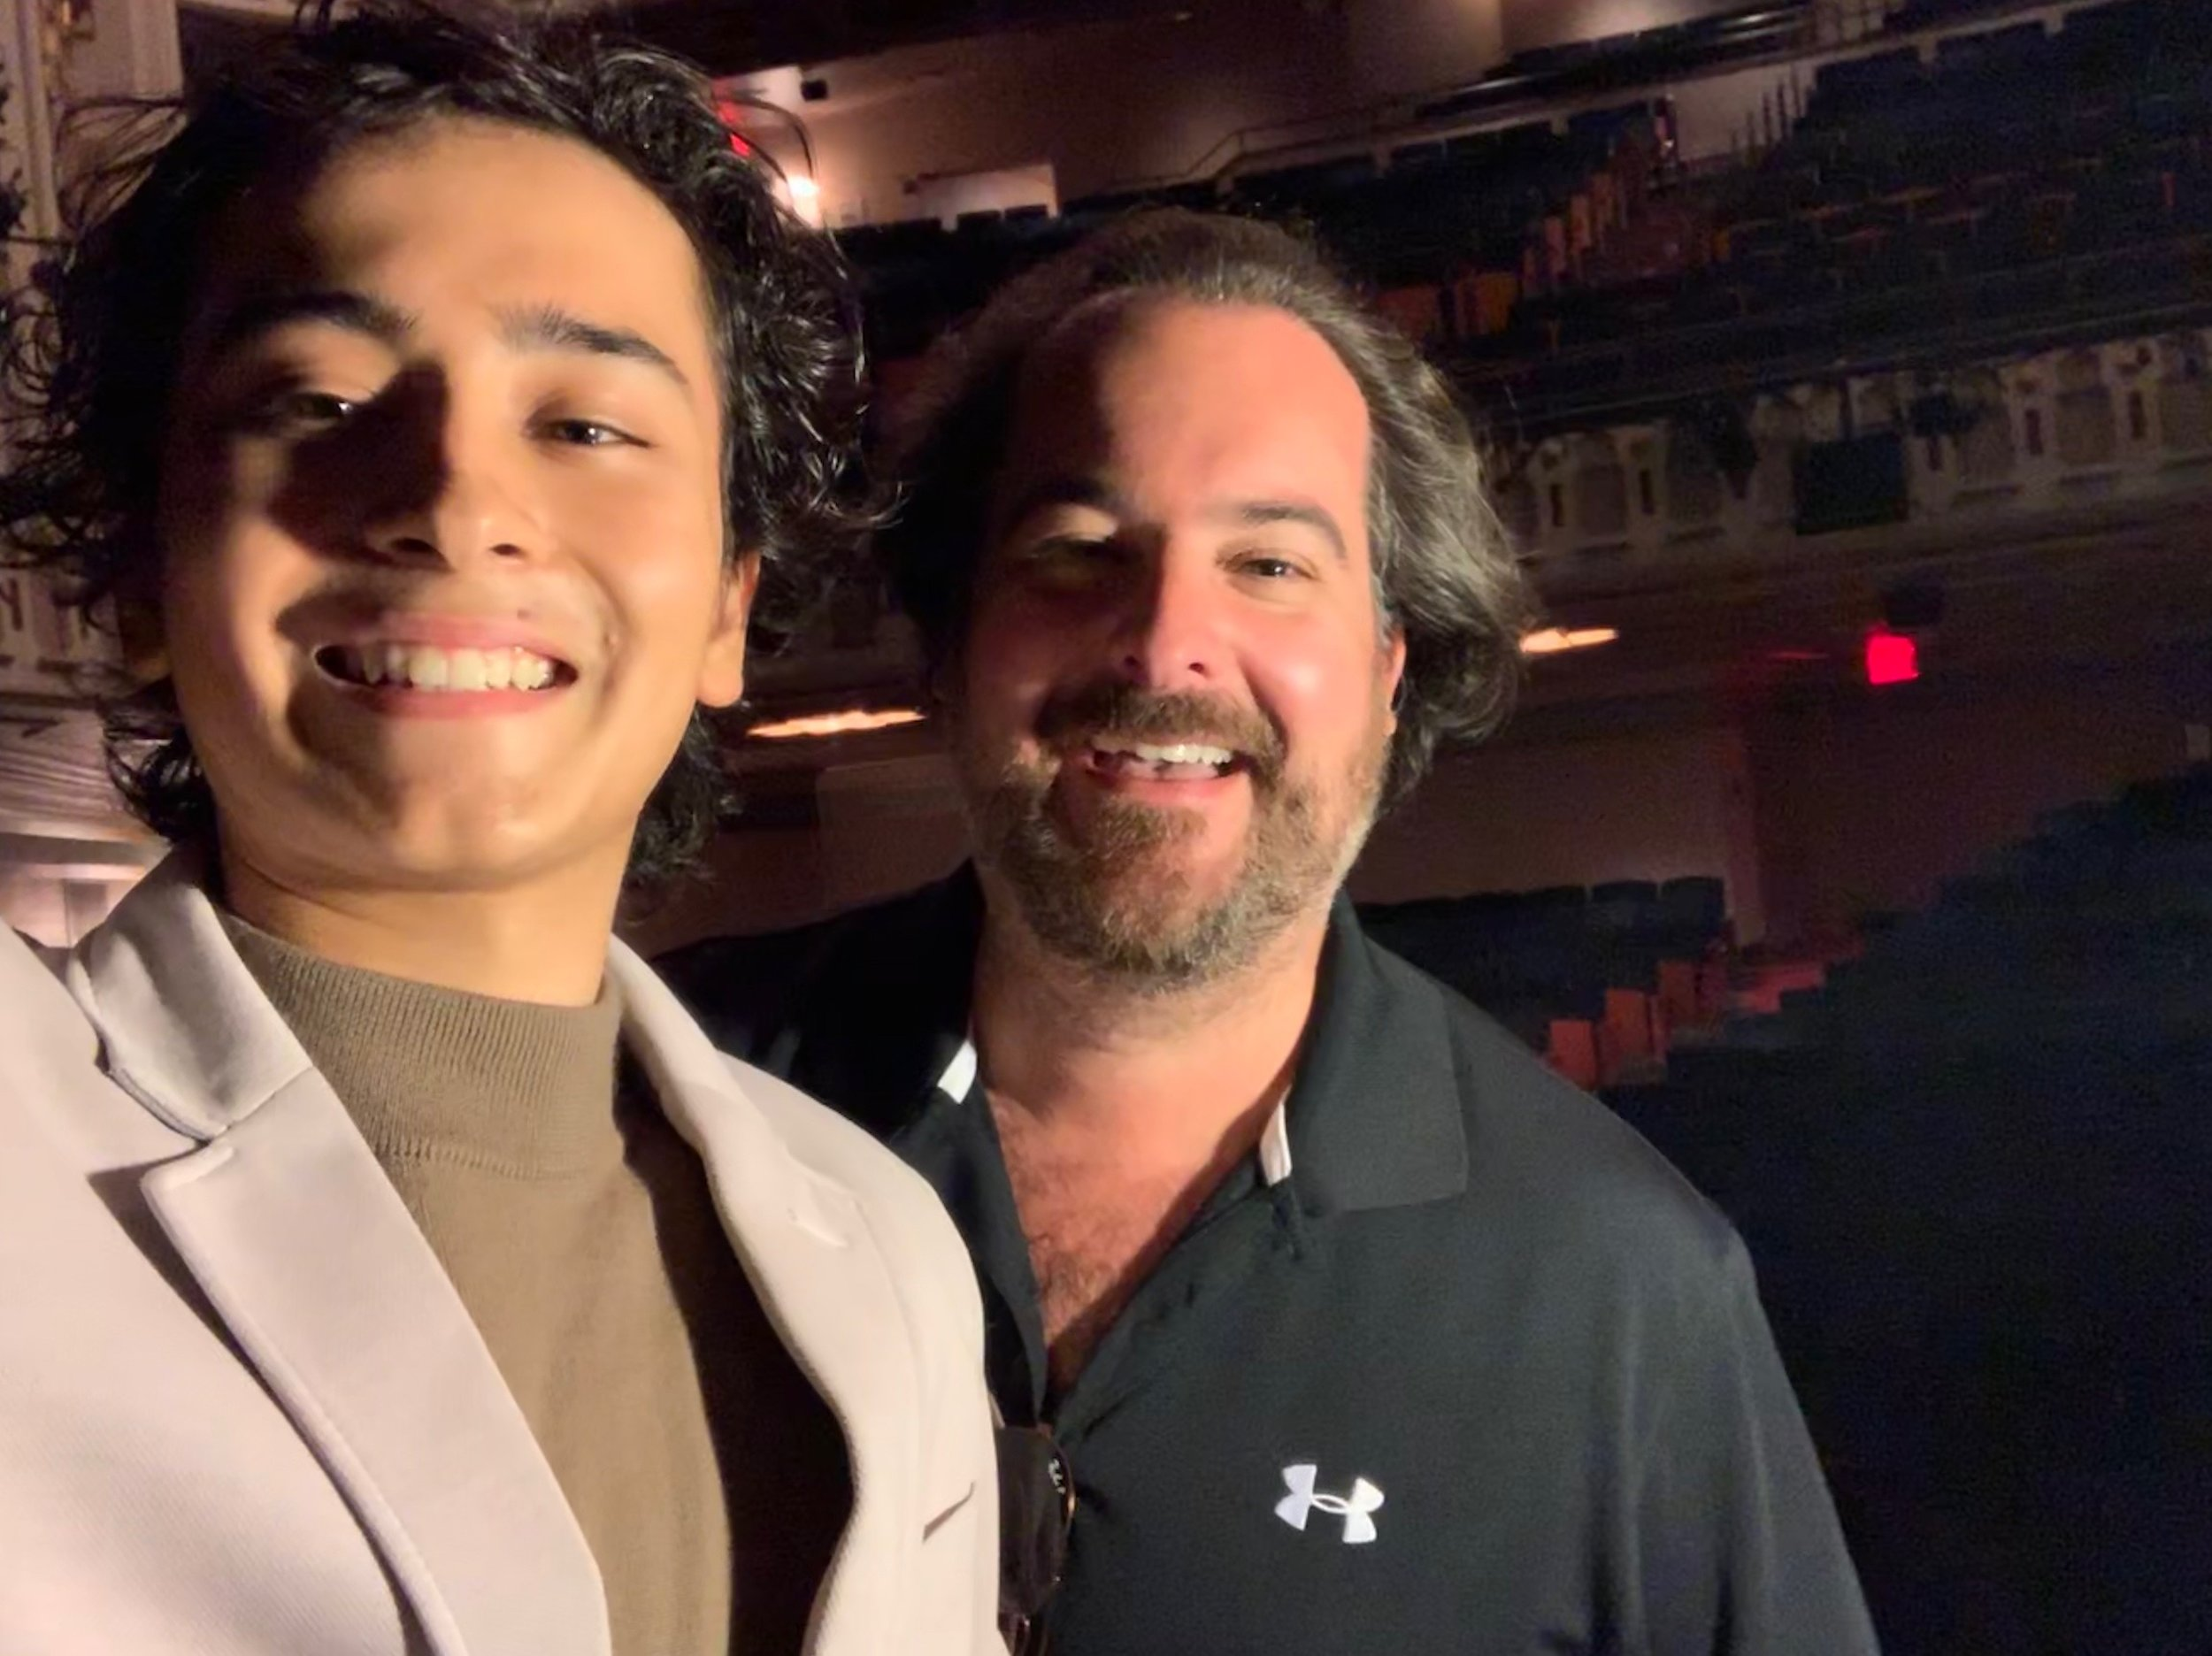 YAA Alum, Mateo Ferro with Artistic Director and Co-Founder of YAA, Rolando Sanz